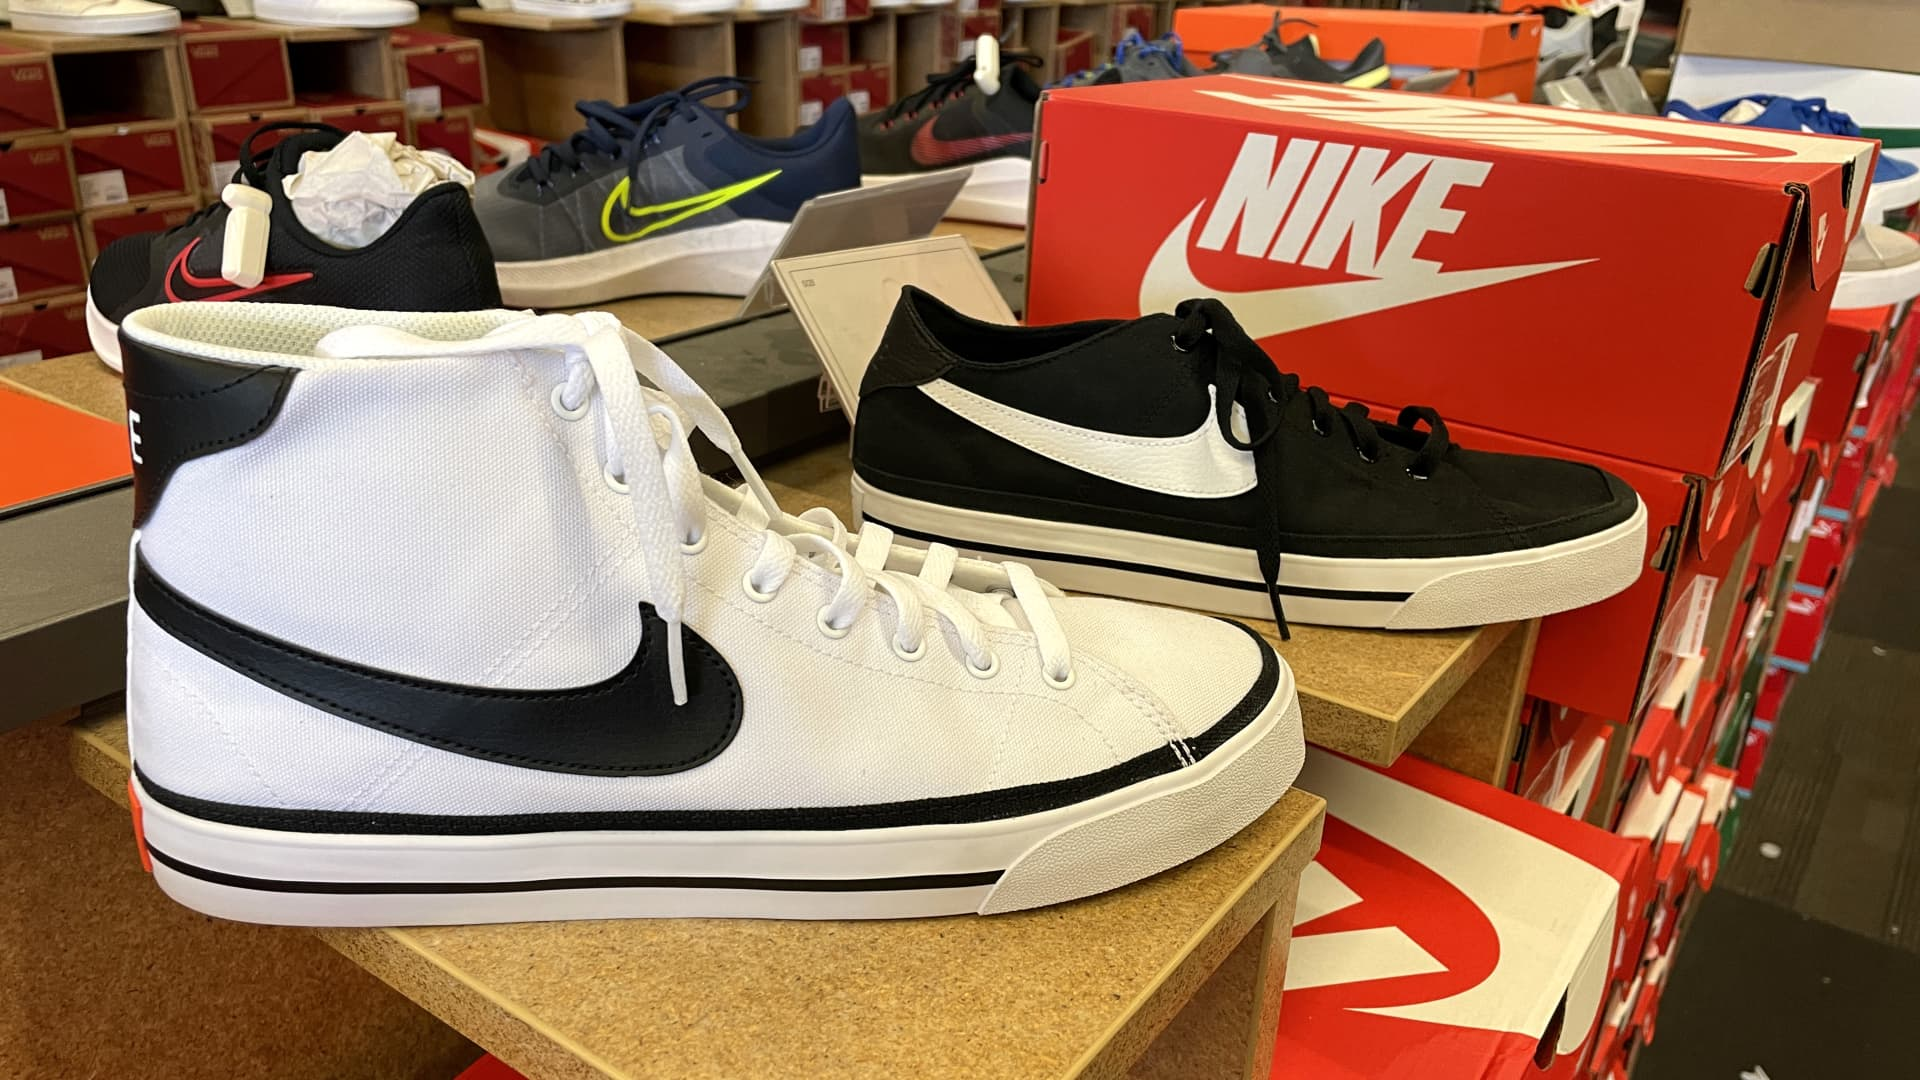 Nike shoes are displayed at a shoe store on September 27, 2021 in Novato, California.